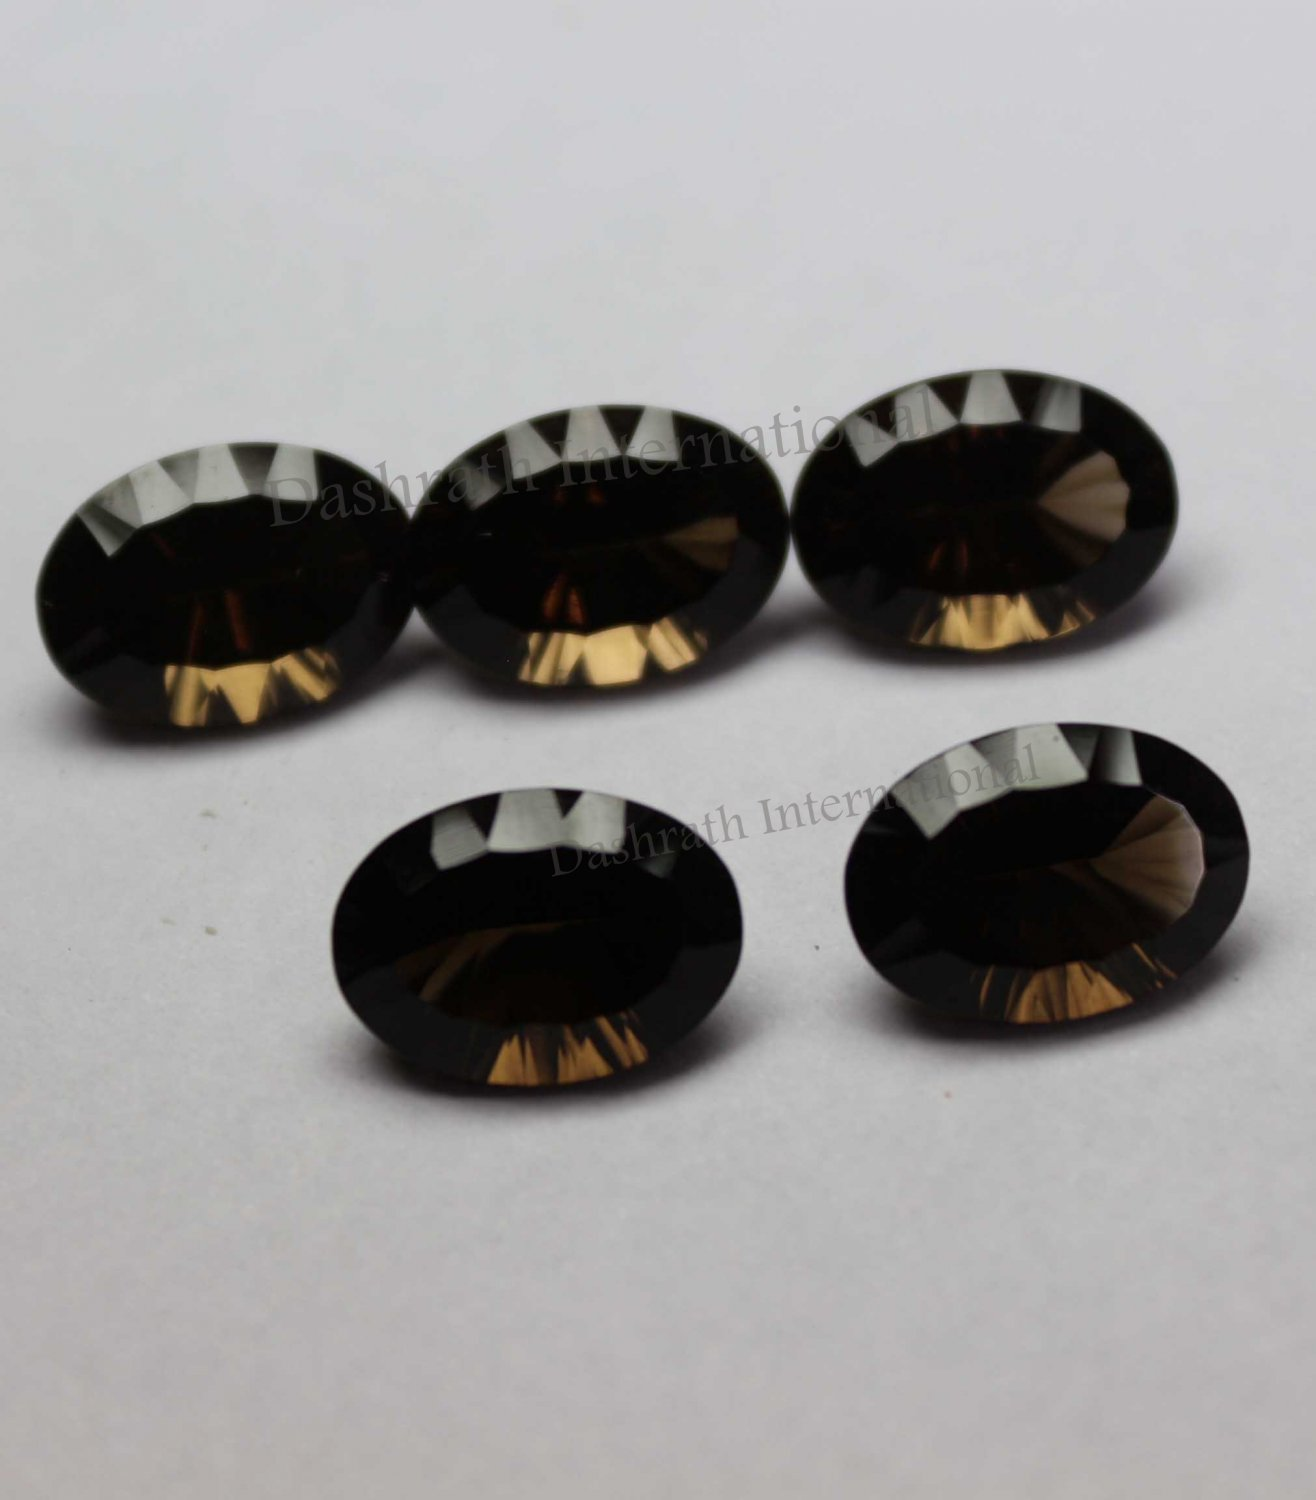 13x18mm Natural Smoky Quartz Concave Cut  Oval 5 Pieces Lot (SI) Top Quality  Loose Gemstone